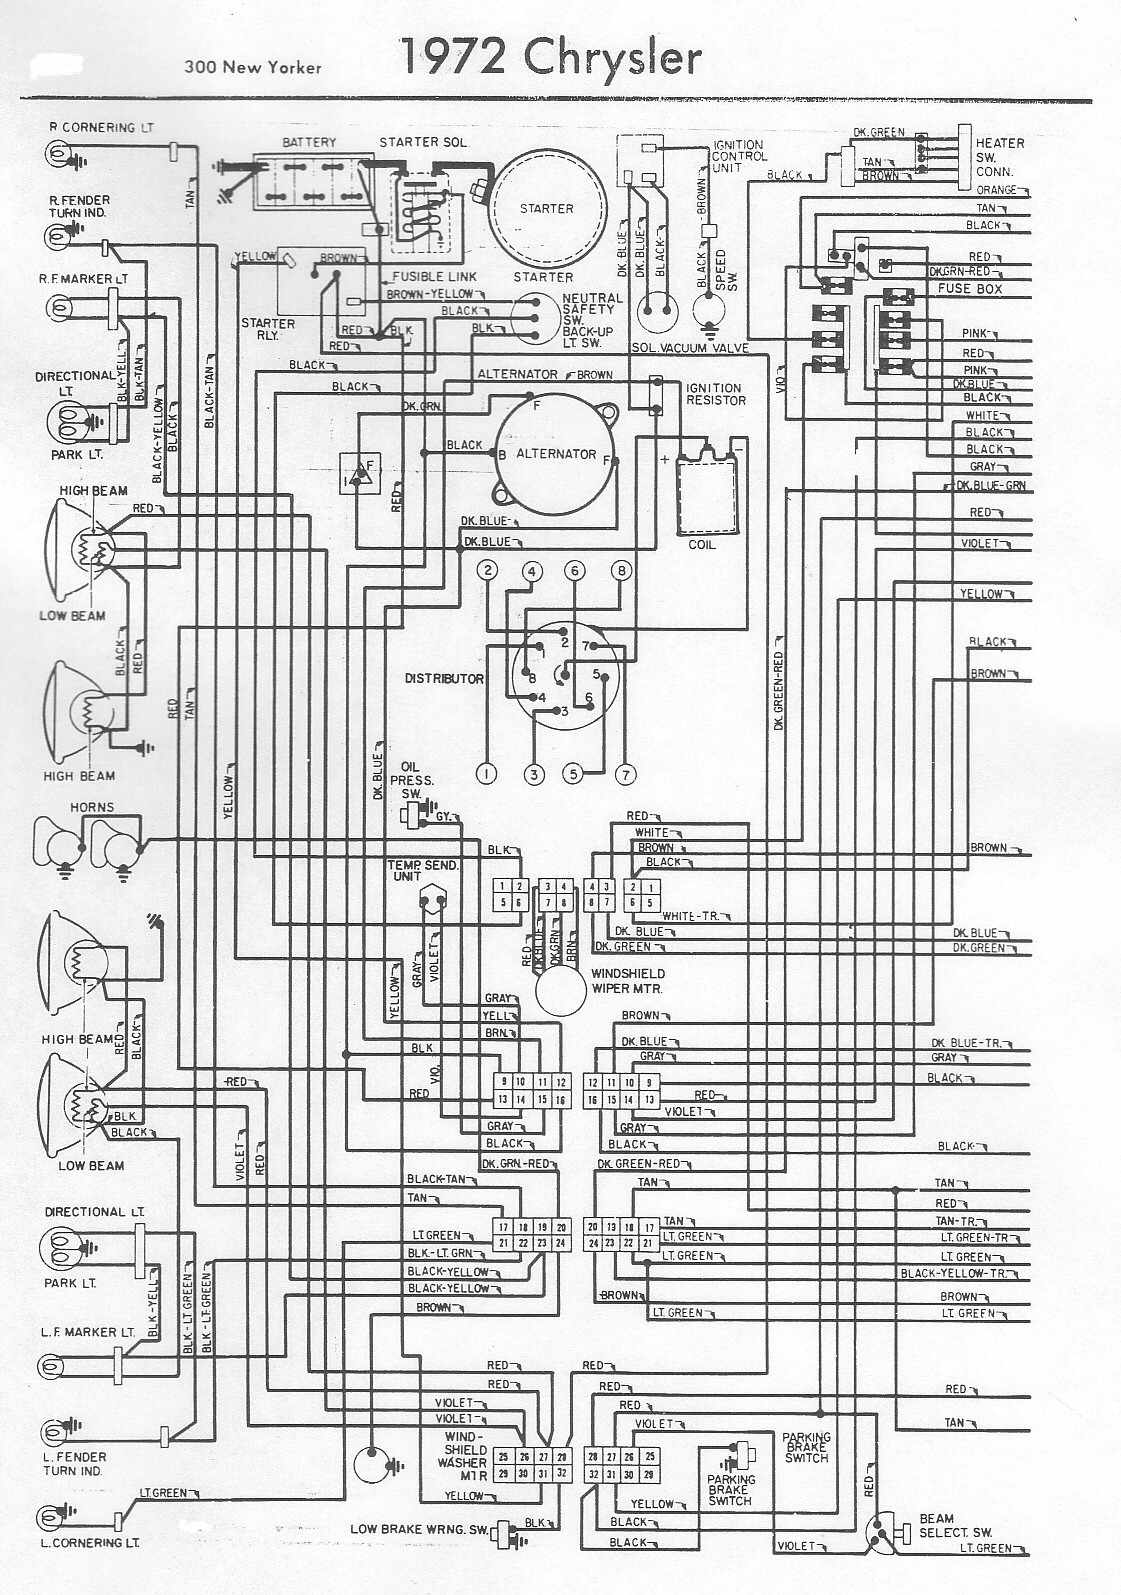 fuse box diagram for a 2005 chrysler 300 limited starting know fuse box on a 2008 [ 1121 x 1595 Pixel ]